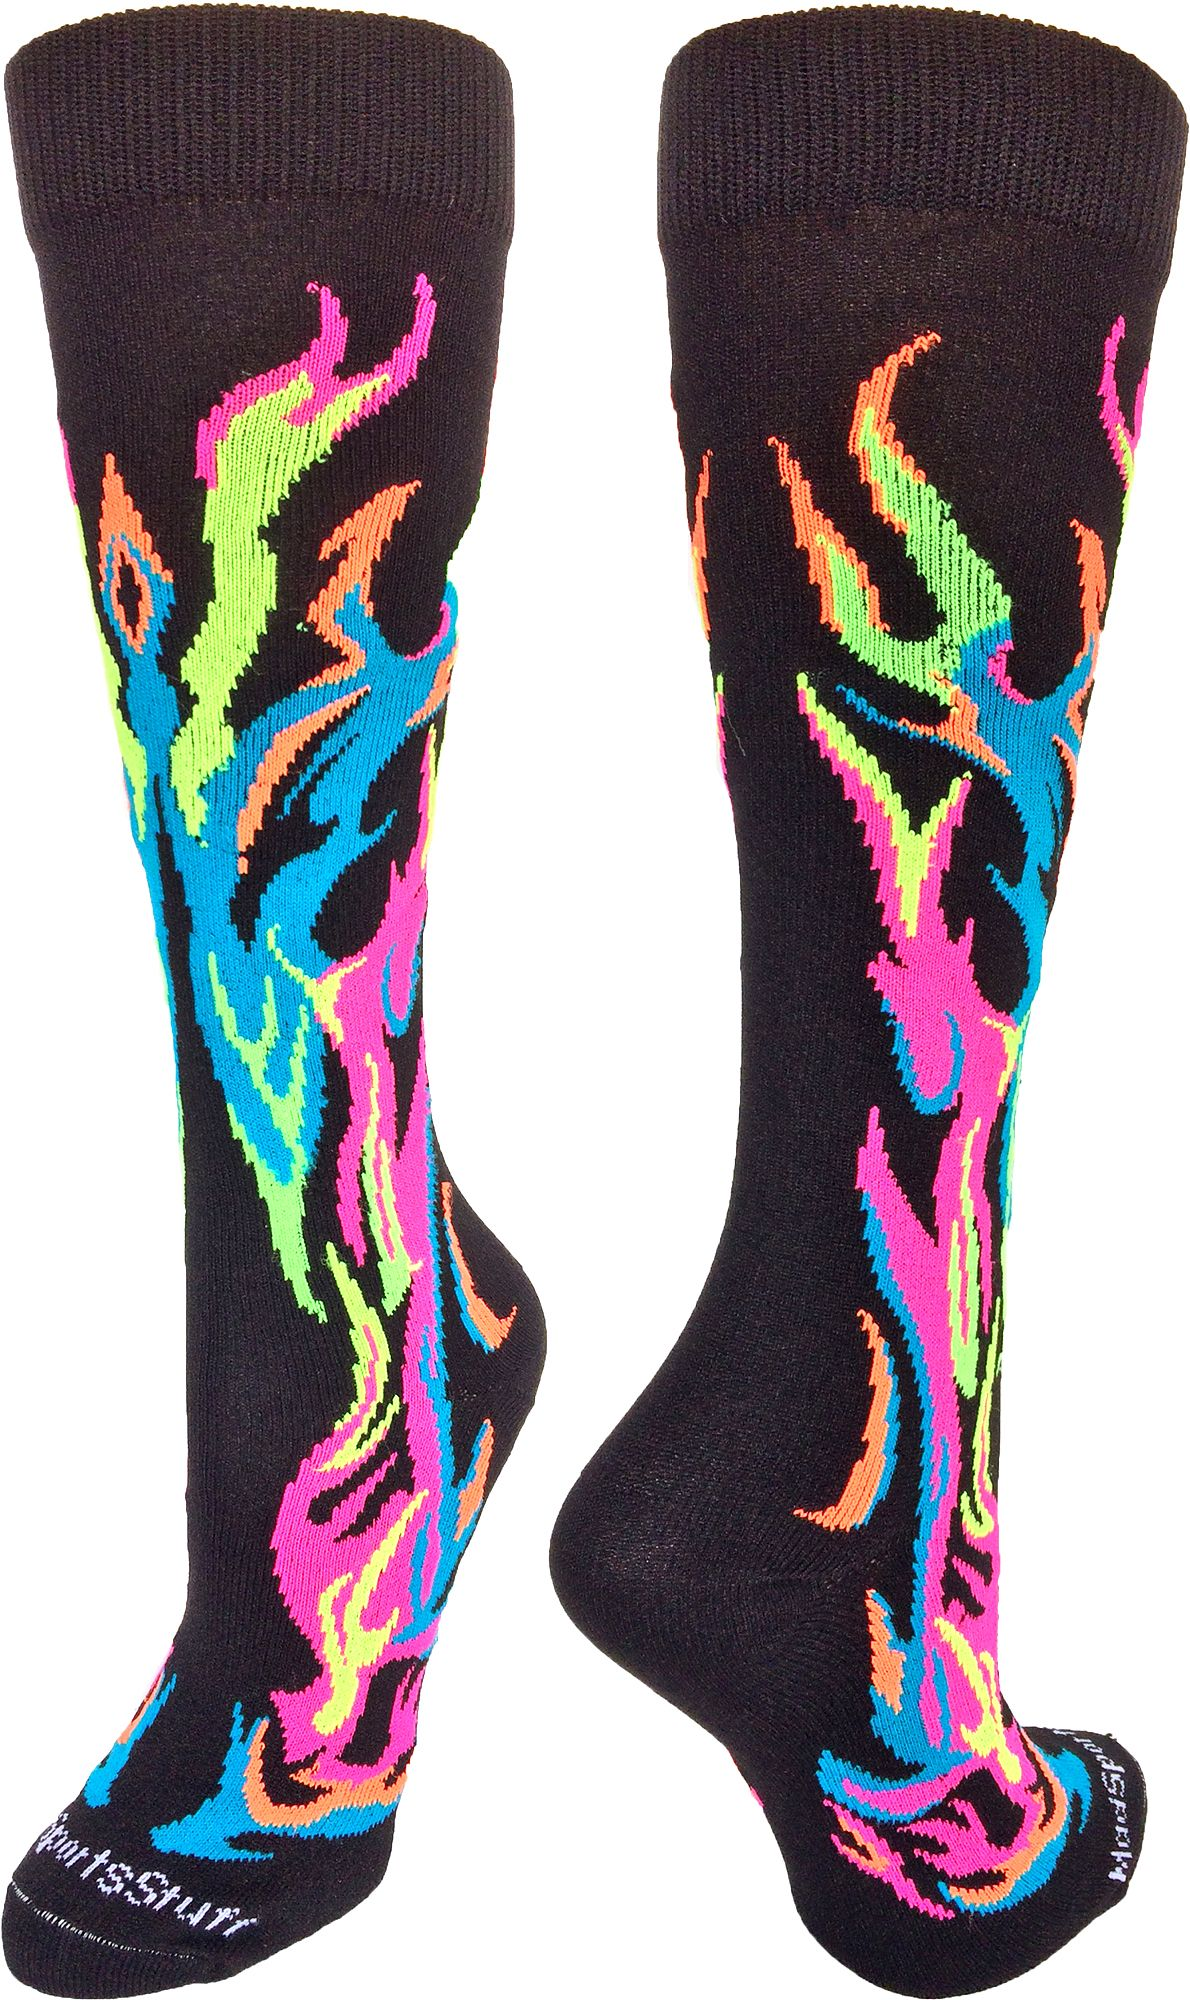 82c81e0babcd3 Athletic Flame Socks - Over the Calf (multiple colors) | Softball ...